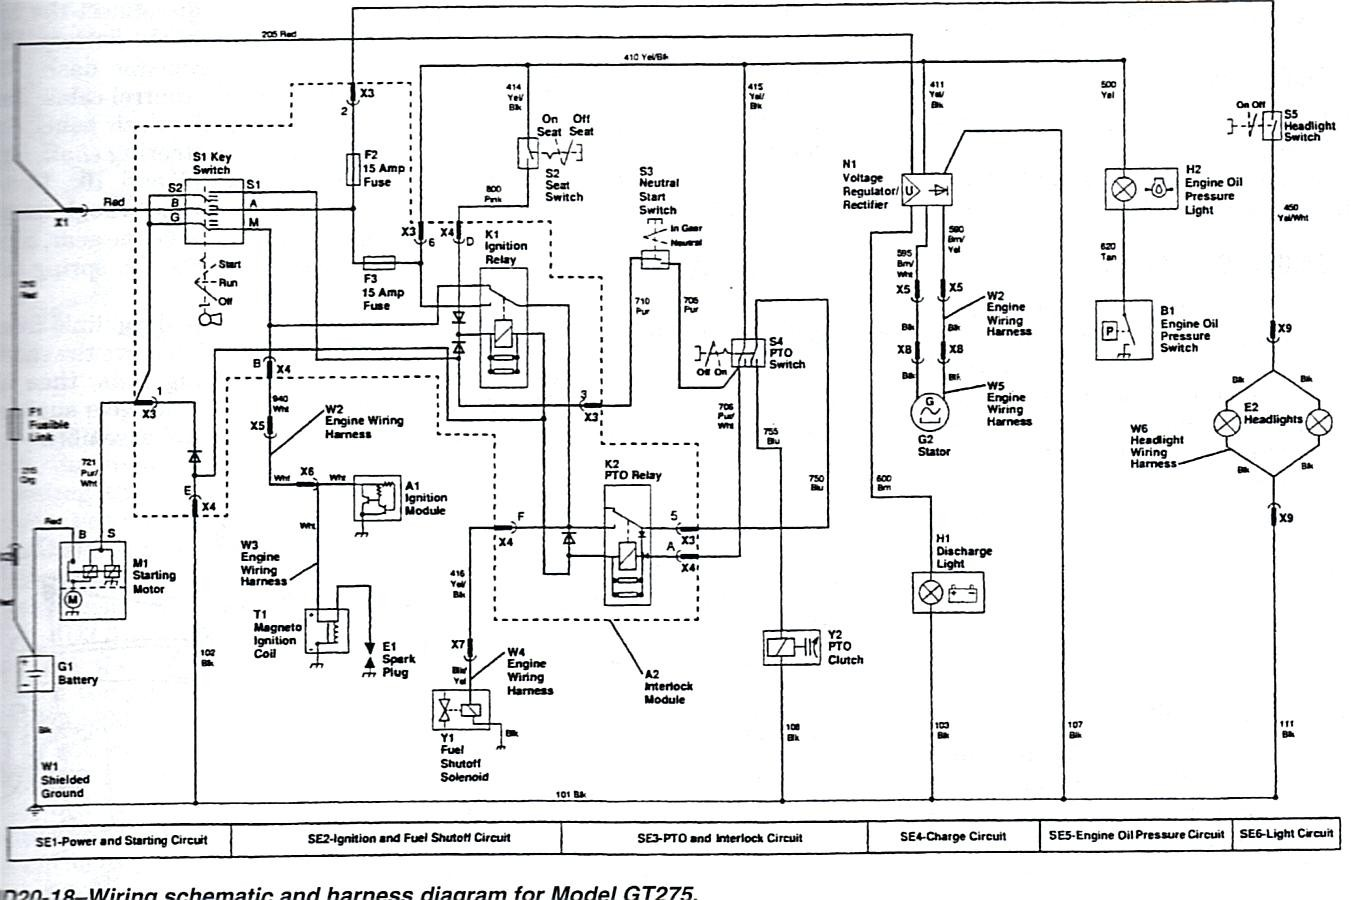 John Deere Hpx Wiring Diagram | Wiring Diagram on bobcat 2200 wiring diagram, kawasaki mule wiring diagram, polaris ranger wiring diagram, john deere gator 4x2 engine diagram, cub cadet tractor wiring diagram, peg perego wiring diagram, polaris outlaw wiring diagram, kawasaki teryx wiring diagram, apache wiring diagram, john deere gator parts diagram, home wiring diagram, john deere gator replacement parts, arctic cat prowler wiring diagram, yamaha rhino wiring diagram, bobcat 2300 wiring diagram, polaris trail boss wiring diagram, power wheels jeep wiring diagram, john deere lx172 parts diagram, polaris sportsman 600 wiring diagram, hpx gator parts diagram,